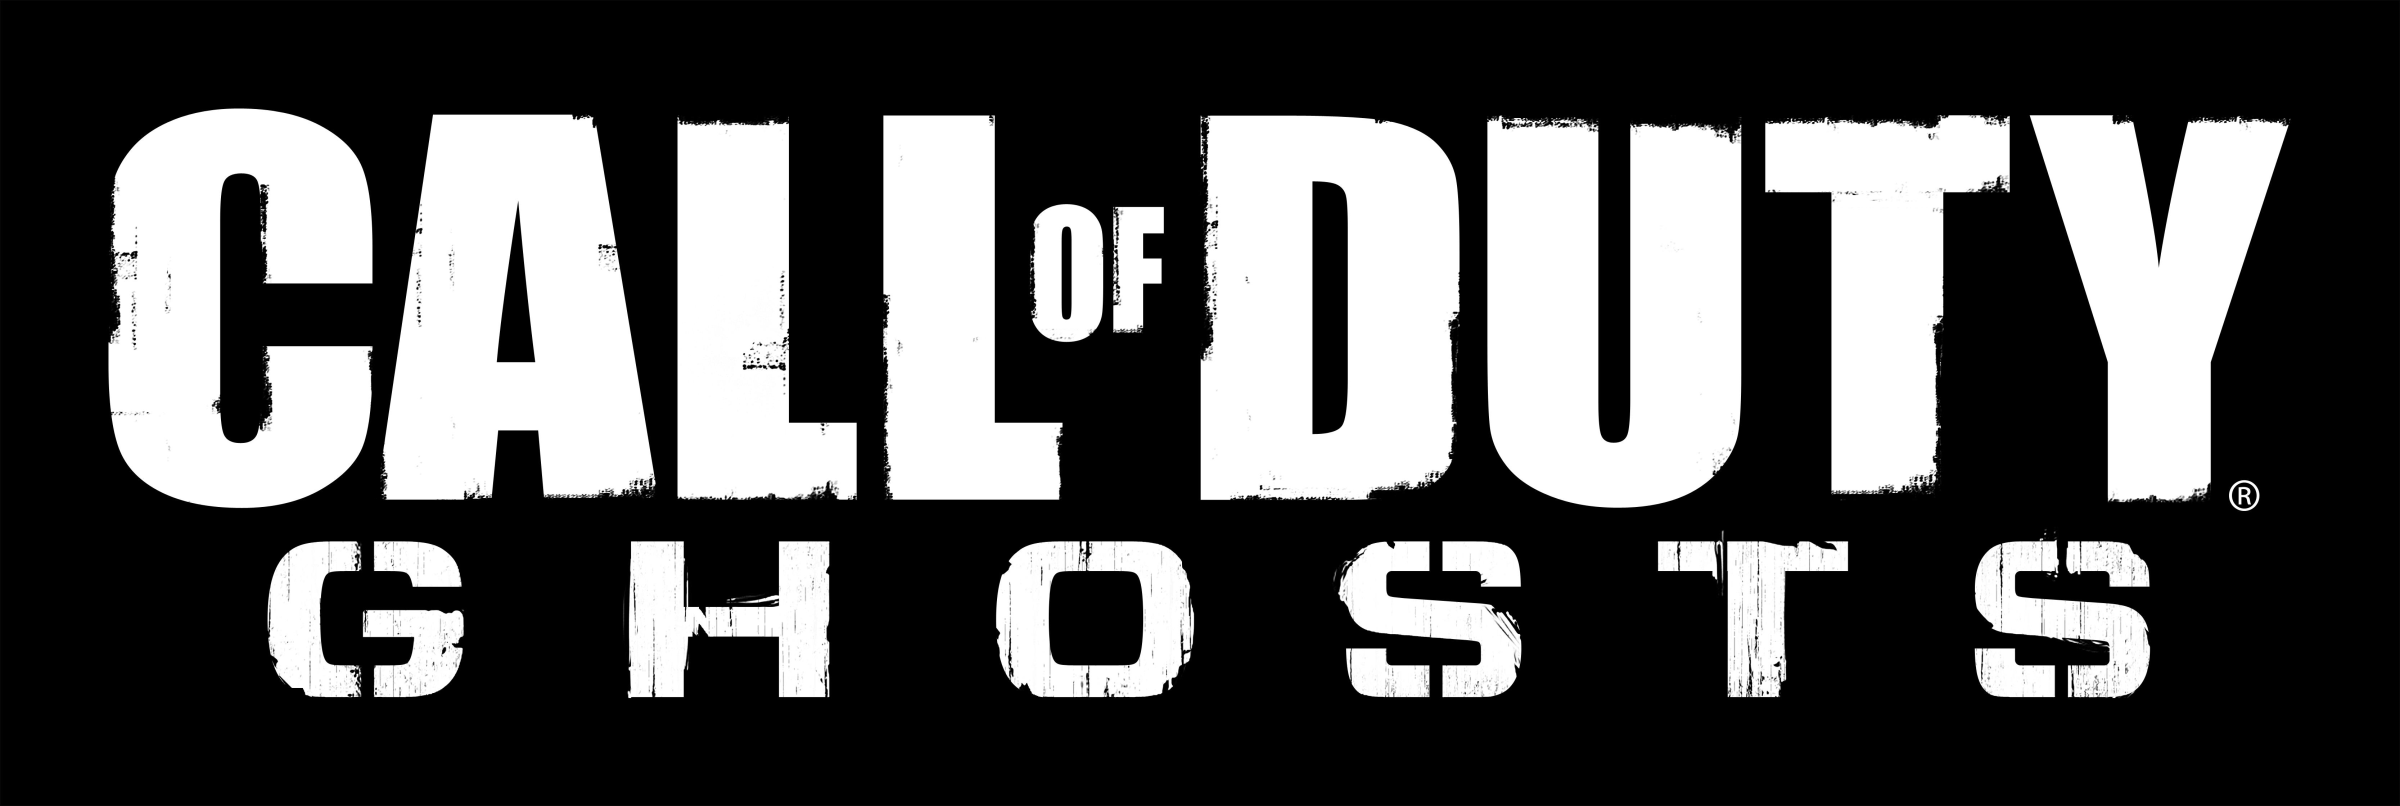 Call of Duty Ghosts Logo PNG Transparent & SVG Vector.